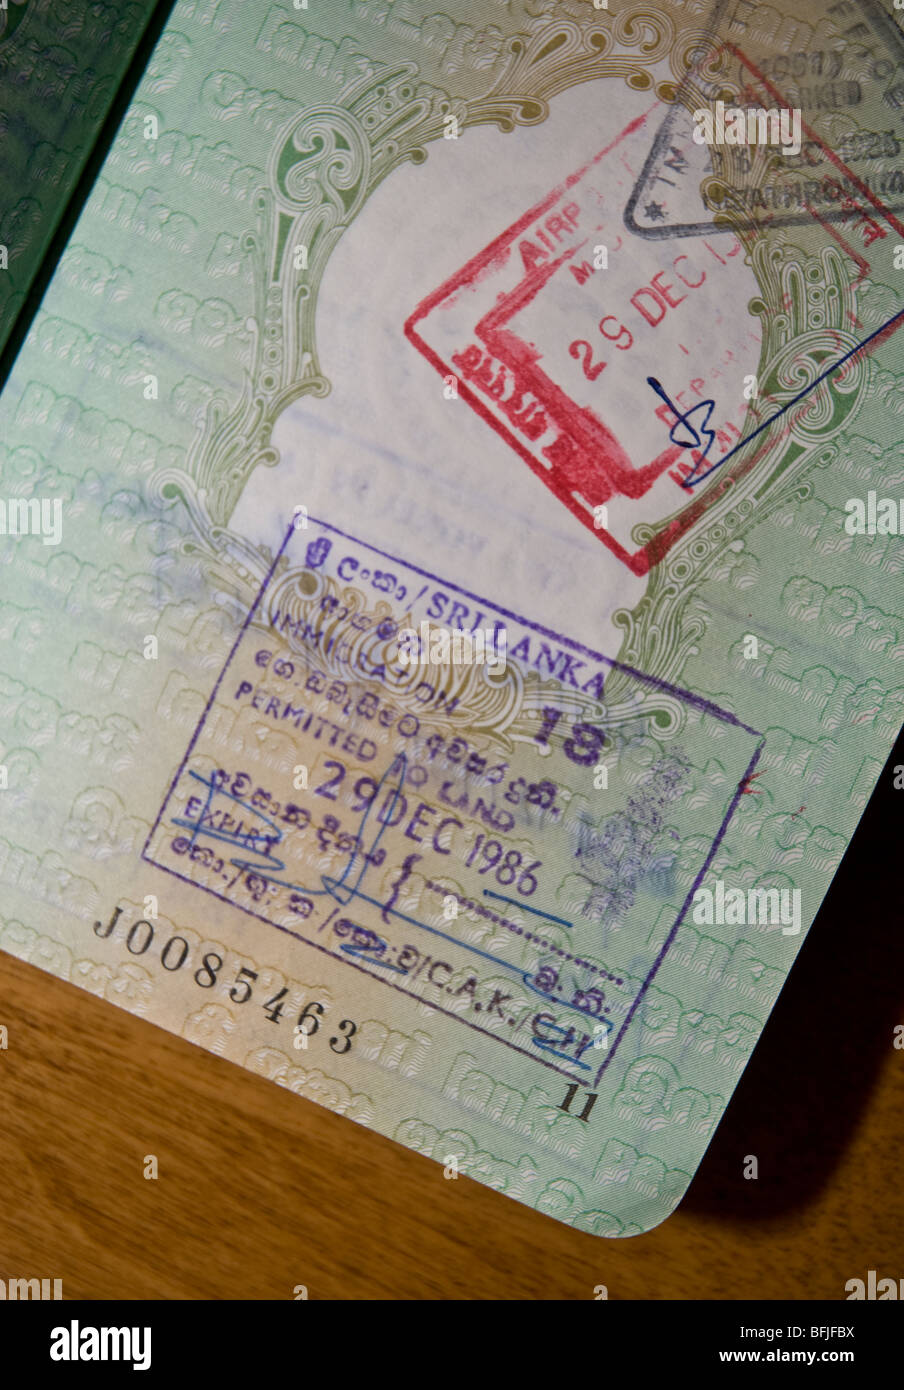 International immigration stamps and visas in a passport - Stock Image